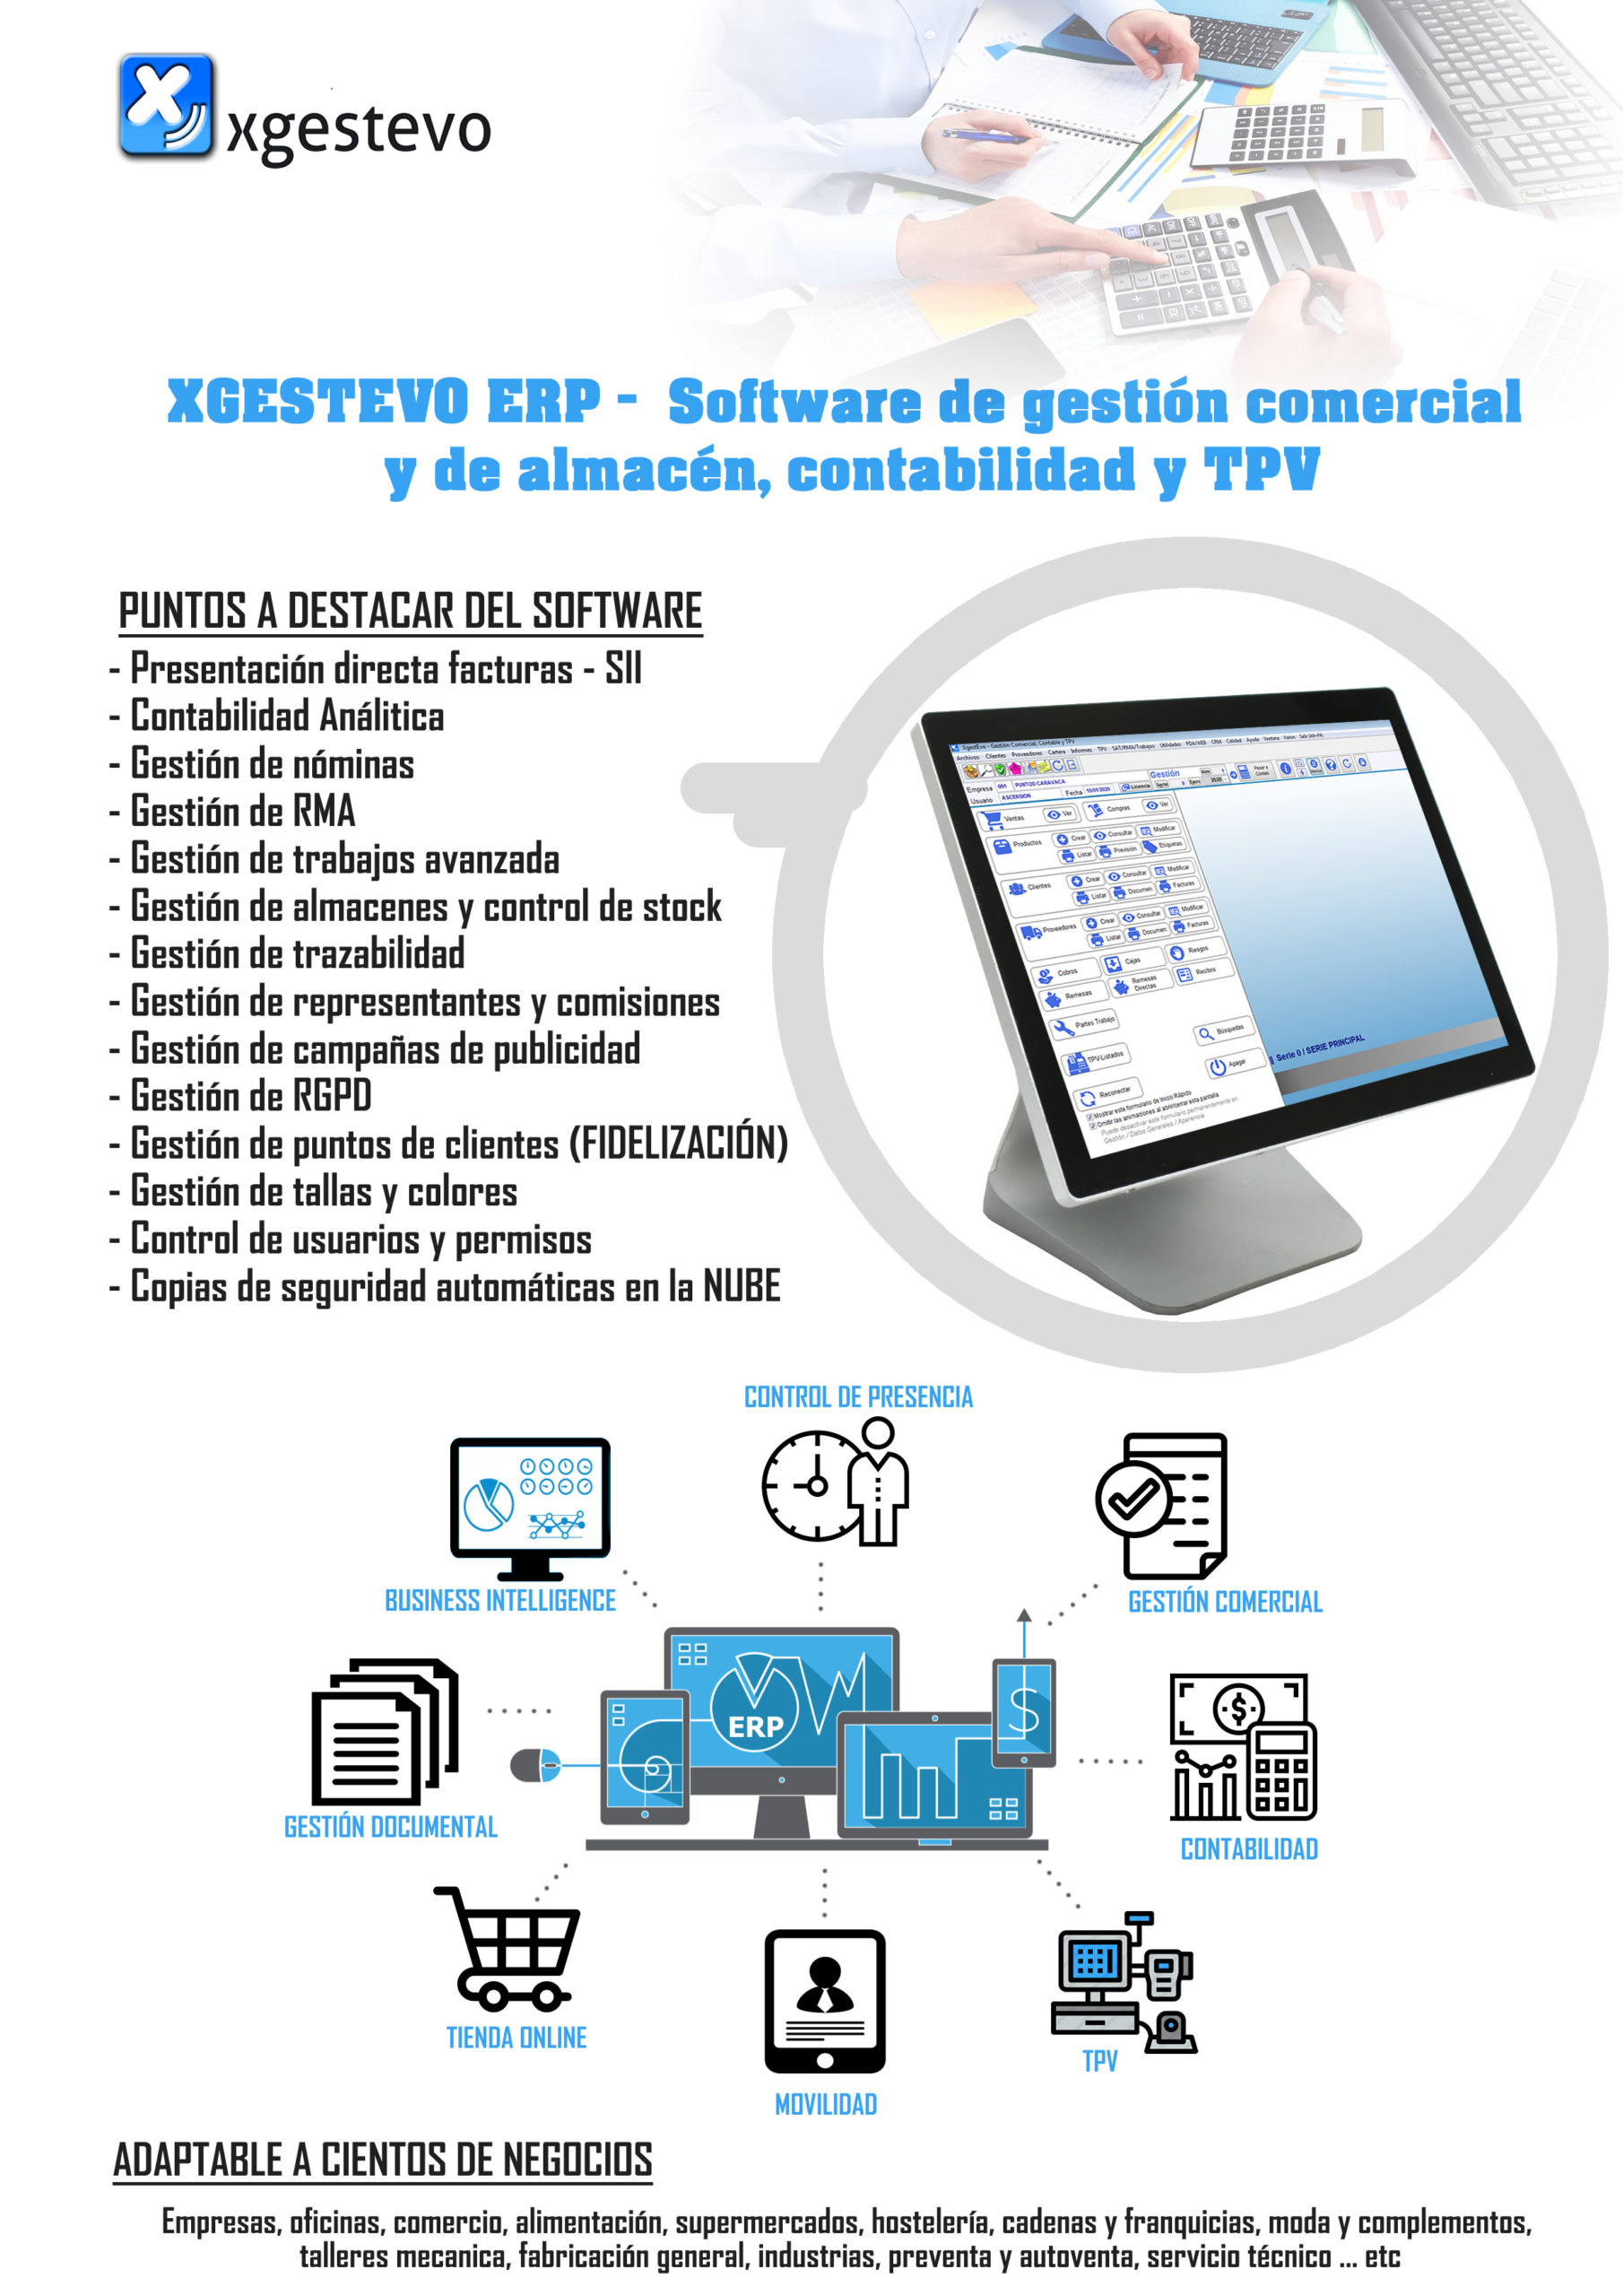 xgestevo-gestion-erp-software-gestion-contabilidad